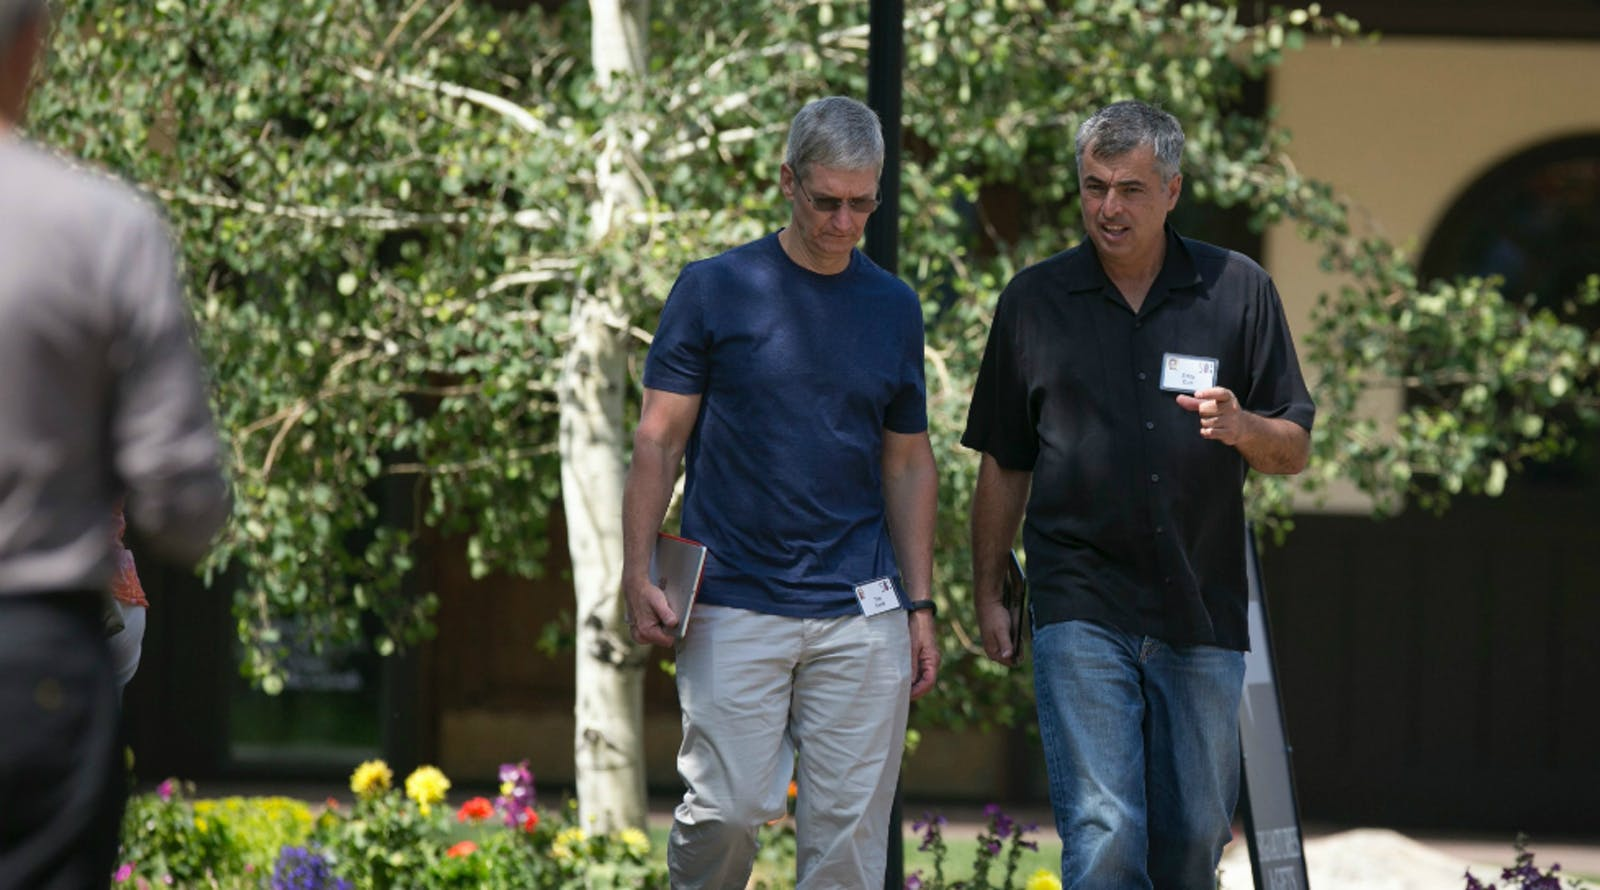 Apple CEO Tim Cook and Senior Vice President Eddy Cue. Photo by Bloomberg.